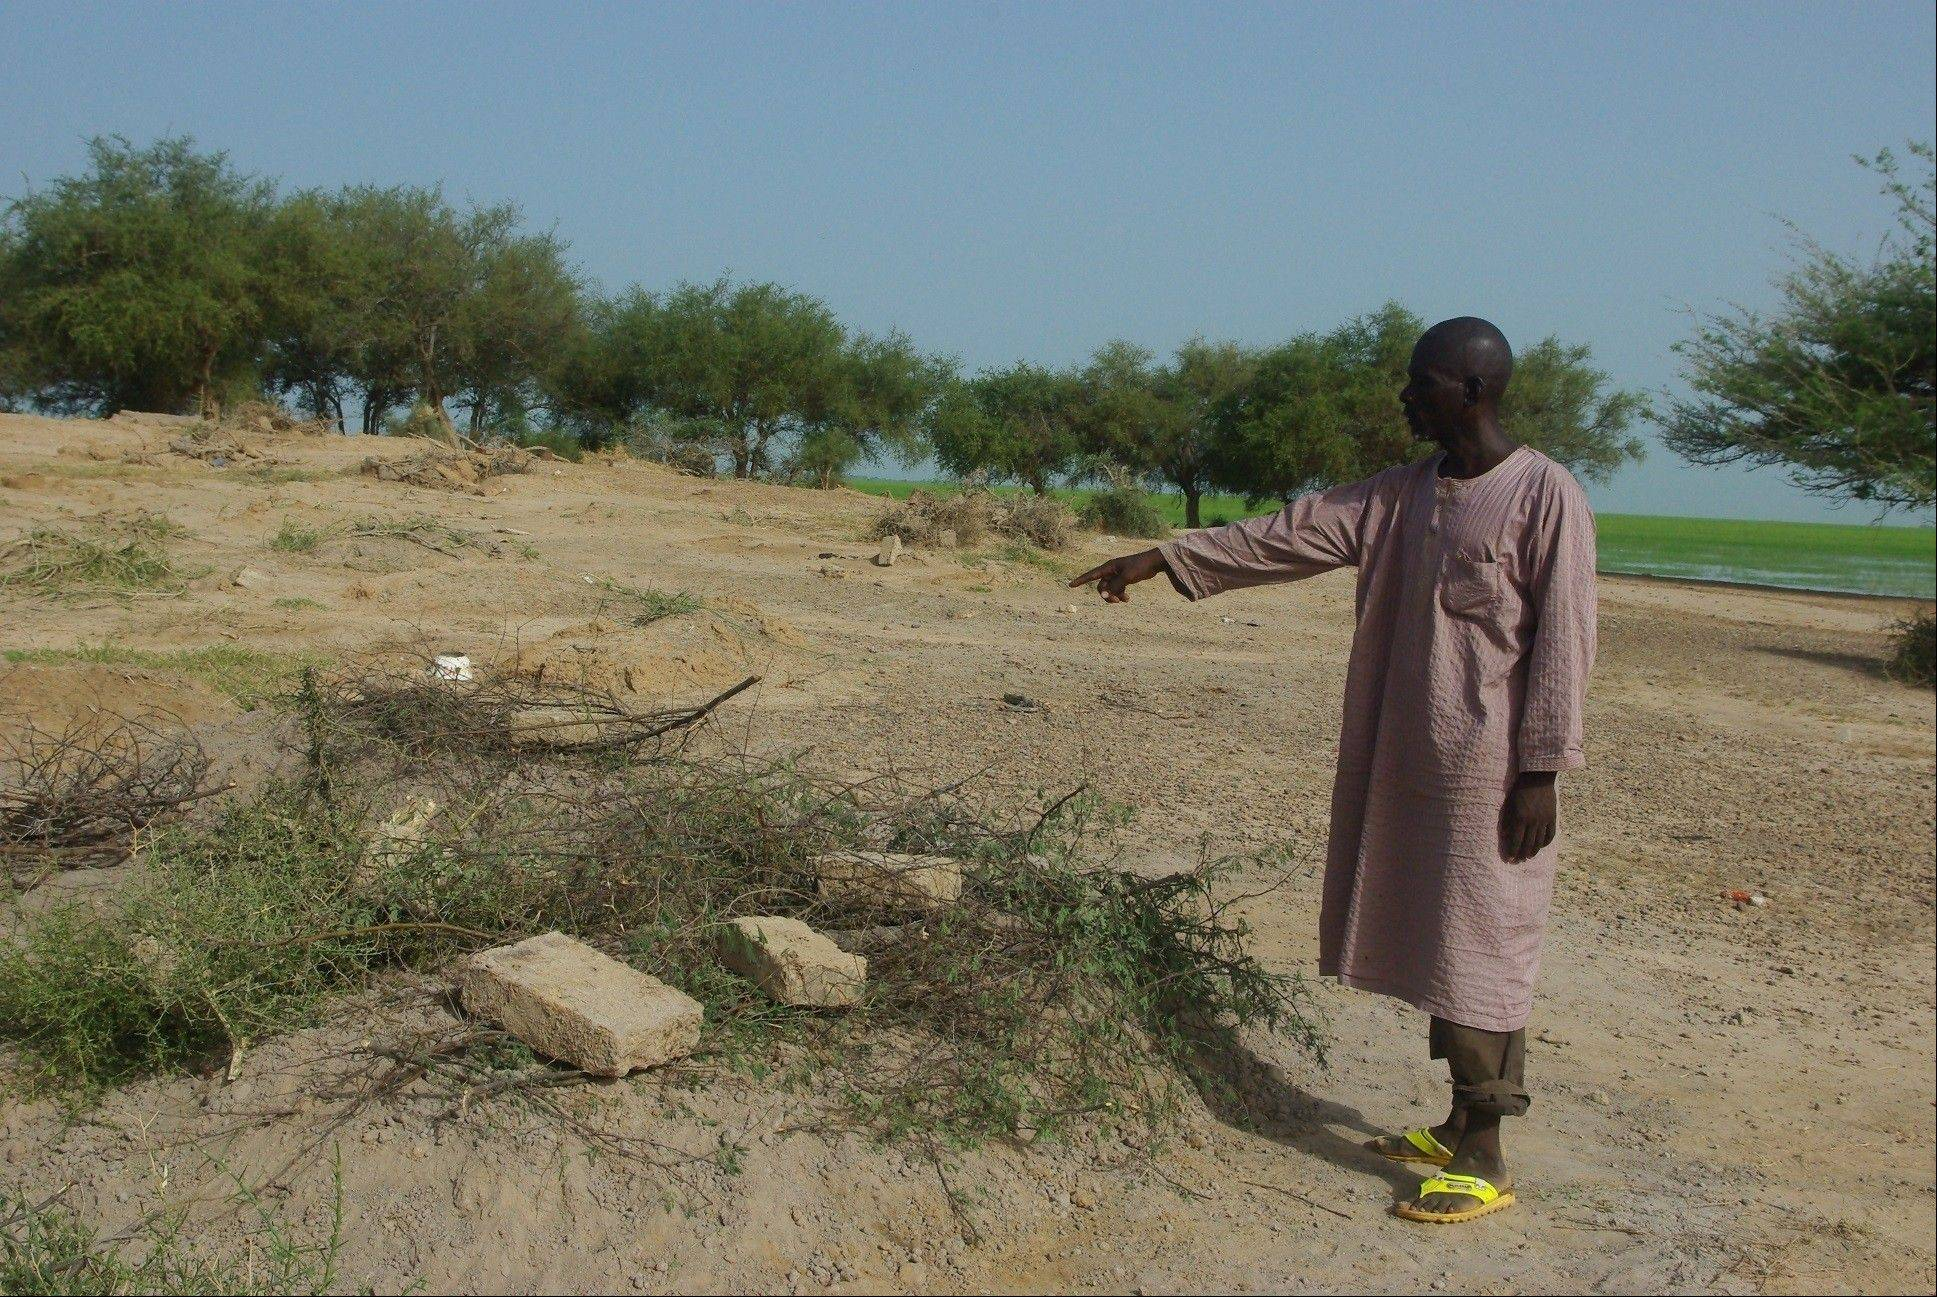 Survivor Mahmoudou Ibrahim points out the graves of his three children Sunday in the village of Bouri, Mali. The children were killed when the boat they were traveling on Friday broke apart and sank into the Niger River.